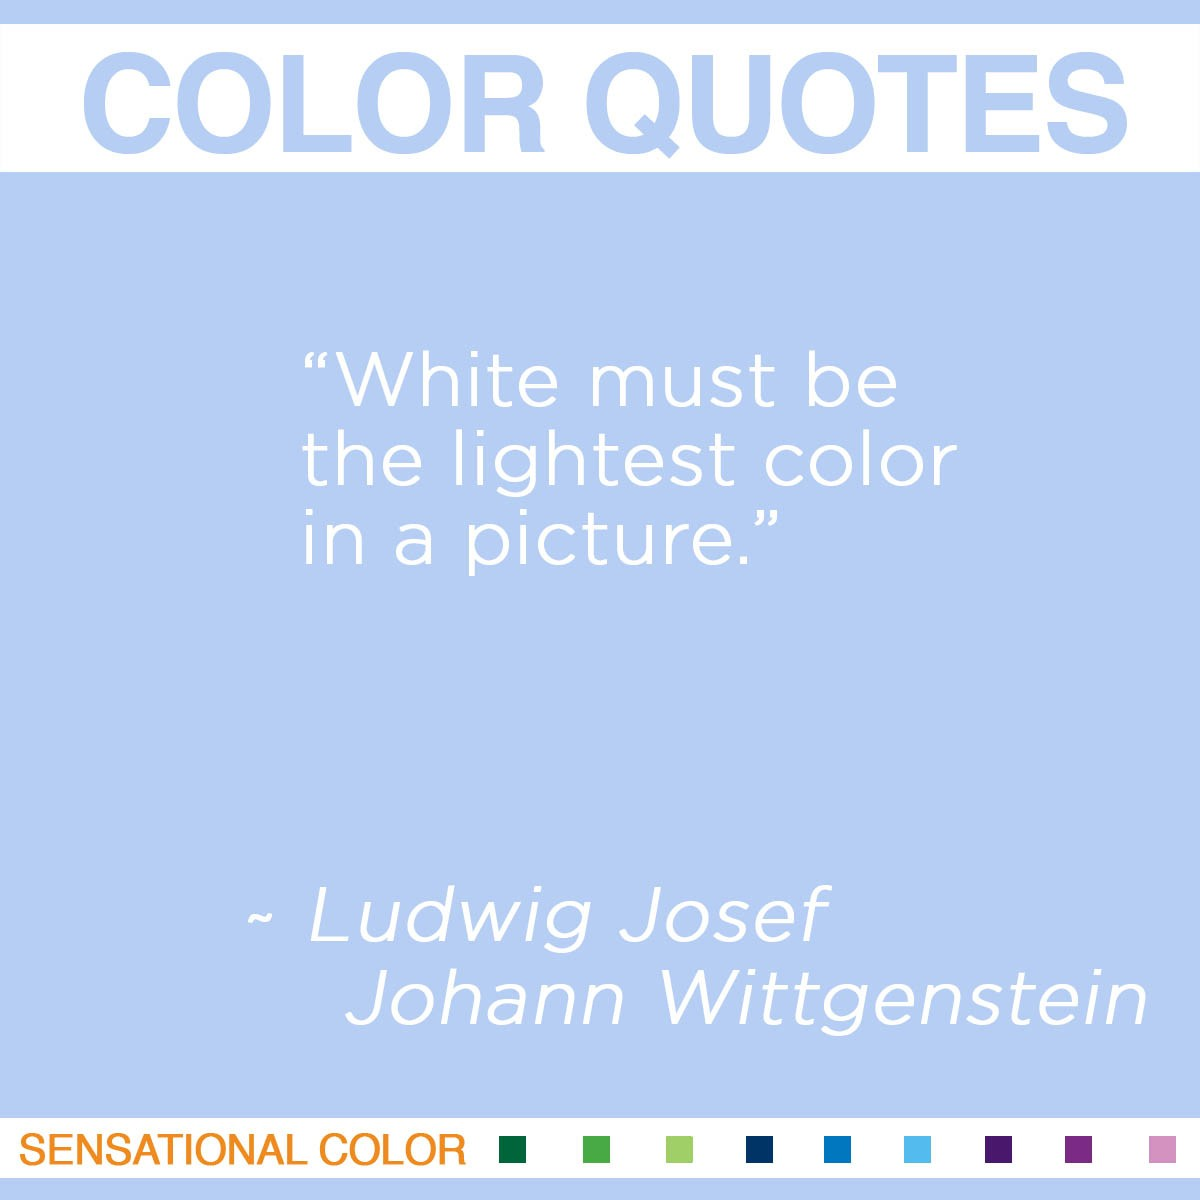 """White must be the lightest color in a picture."" - Ludwig Josef Johann Wittgenstein"